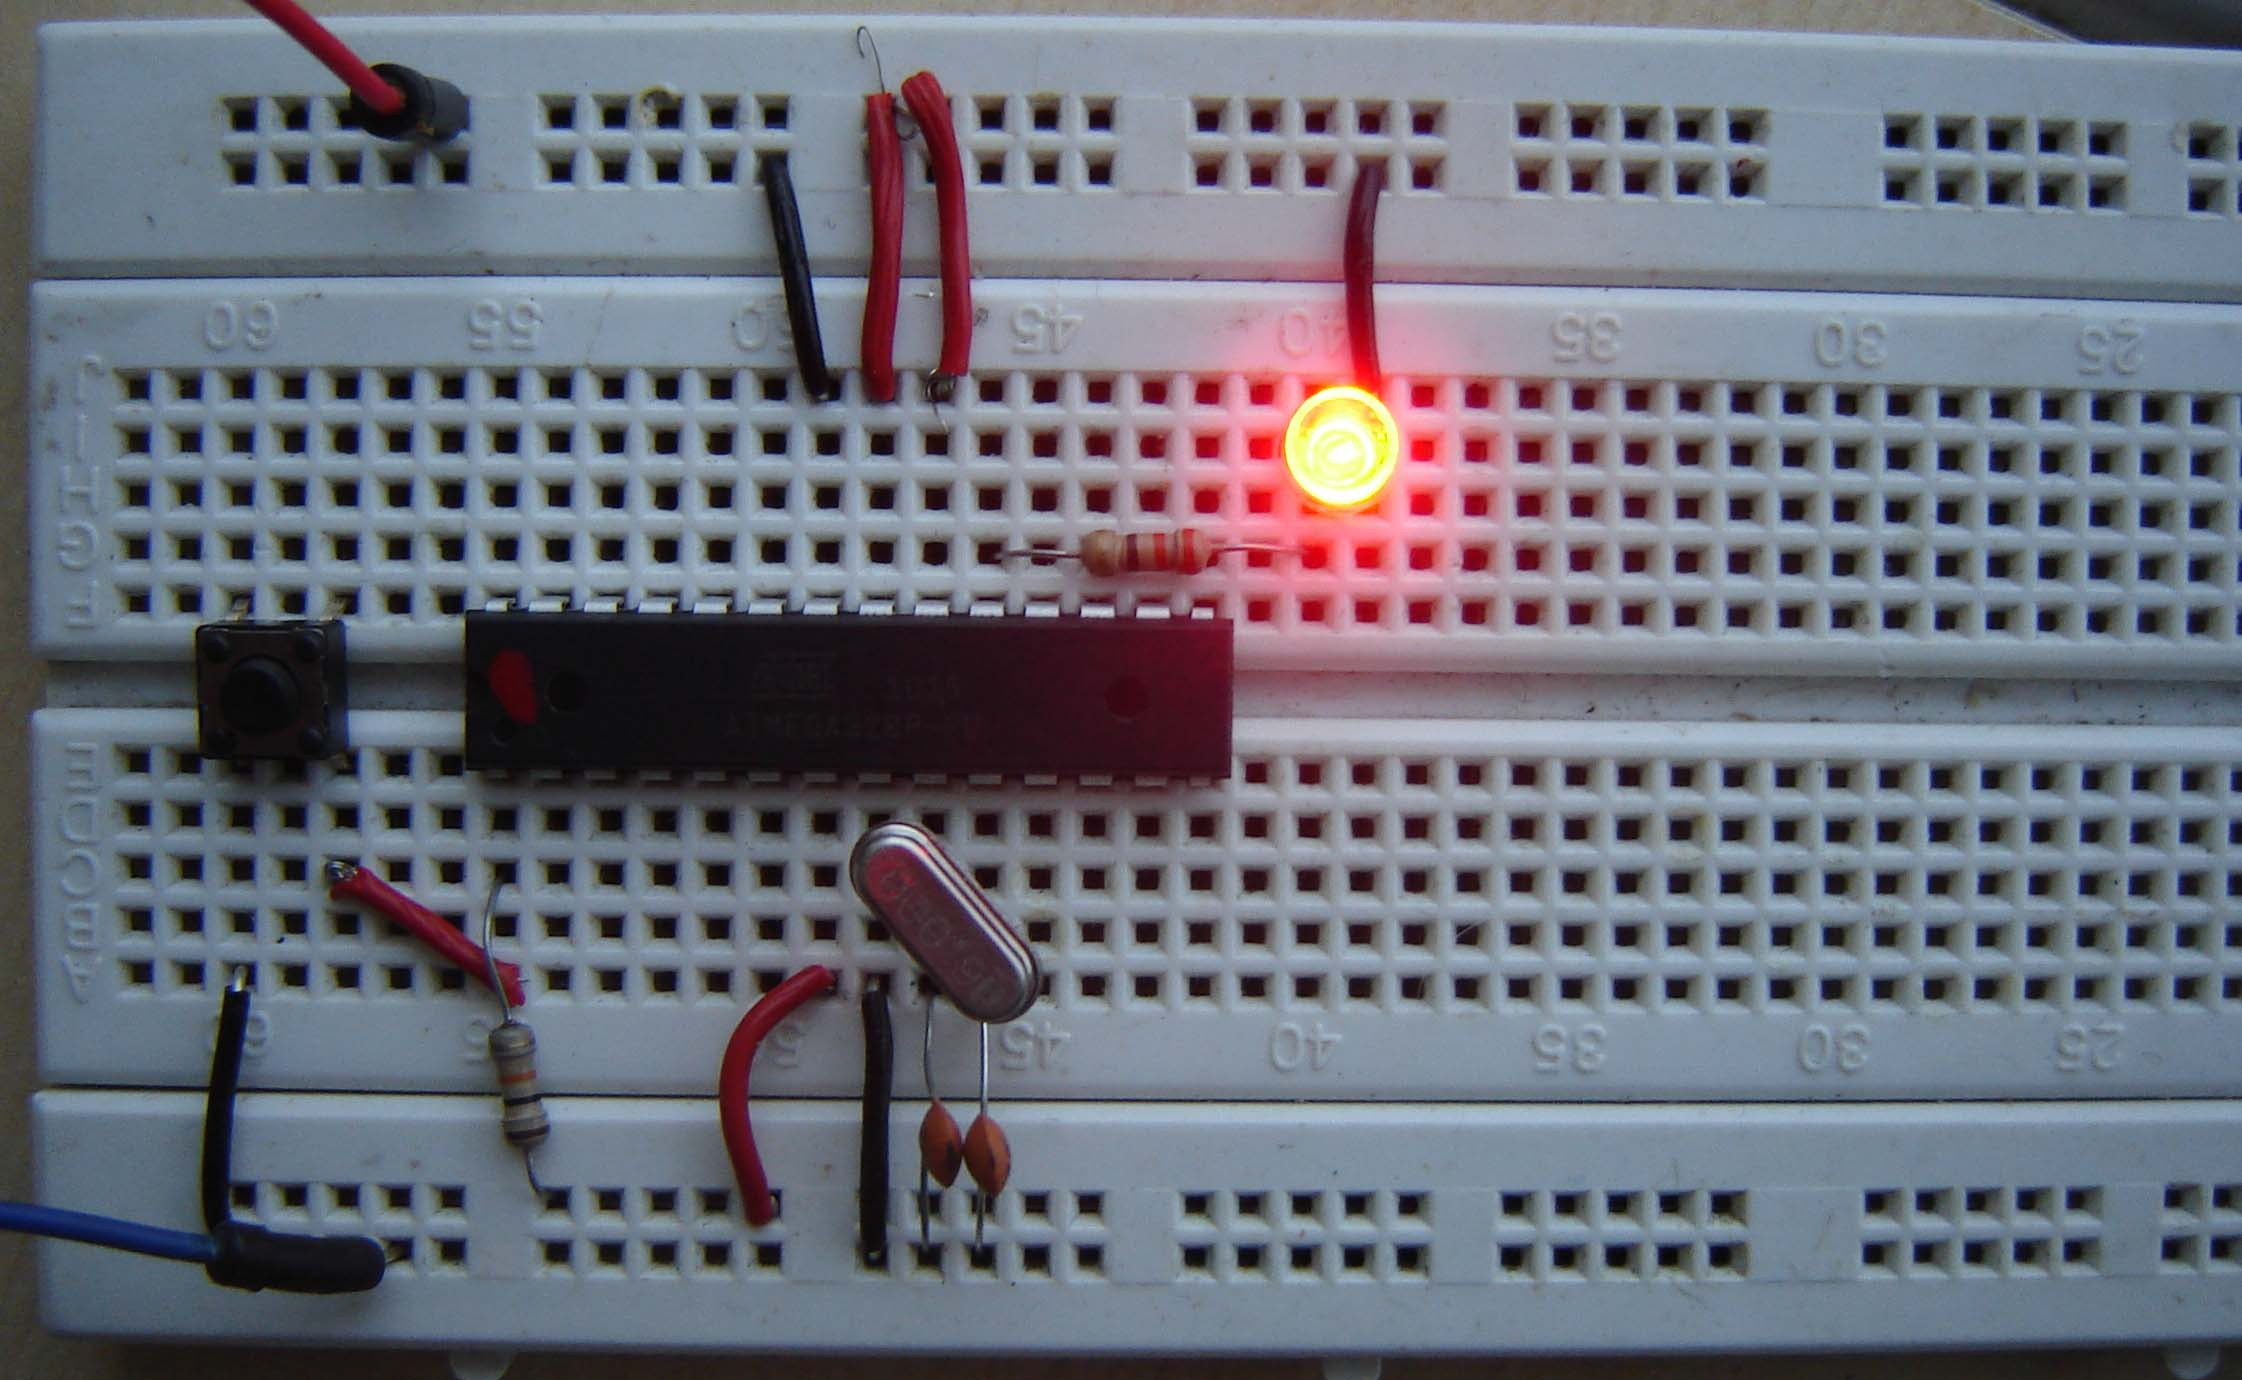 Blinker Using Arduino And Ne555 Timer Ic Buildcircuit Electronics Clap Switch Project For Beginners On